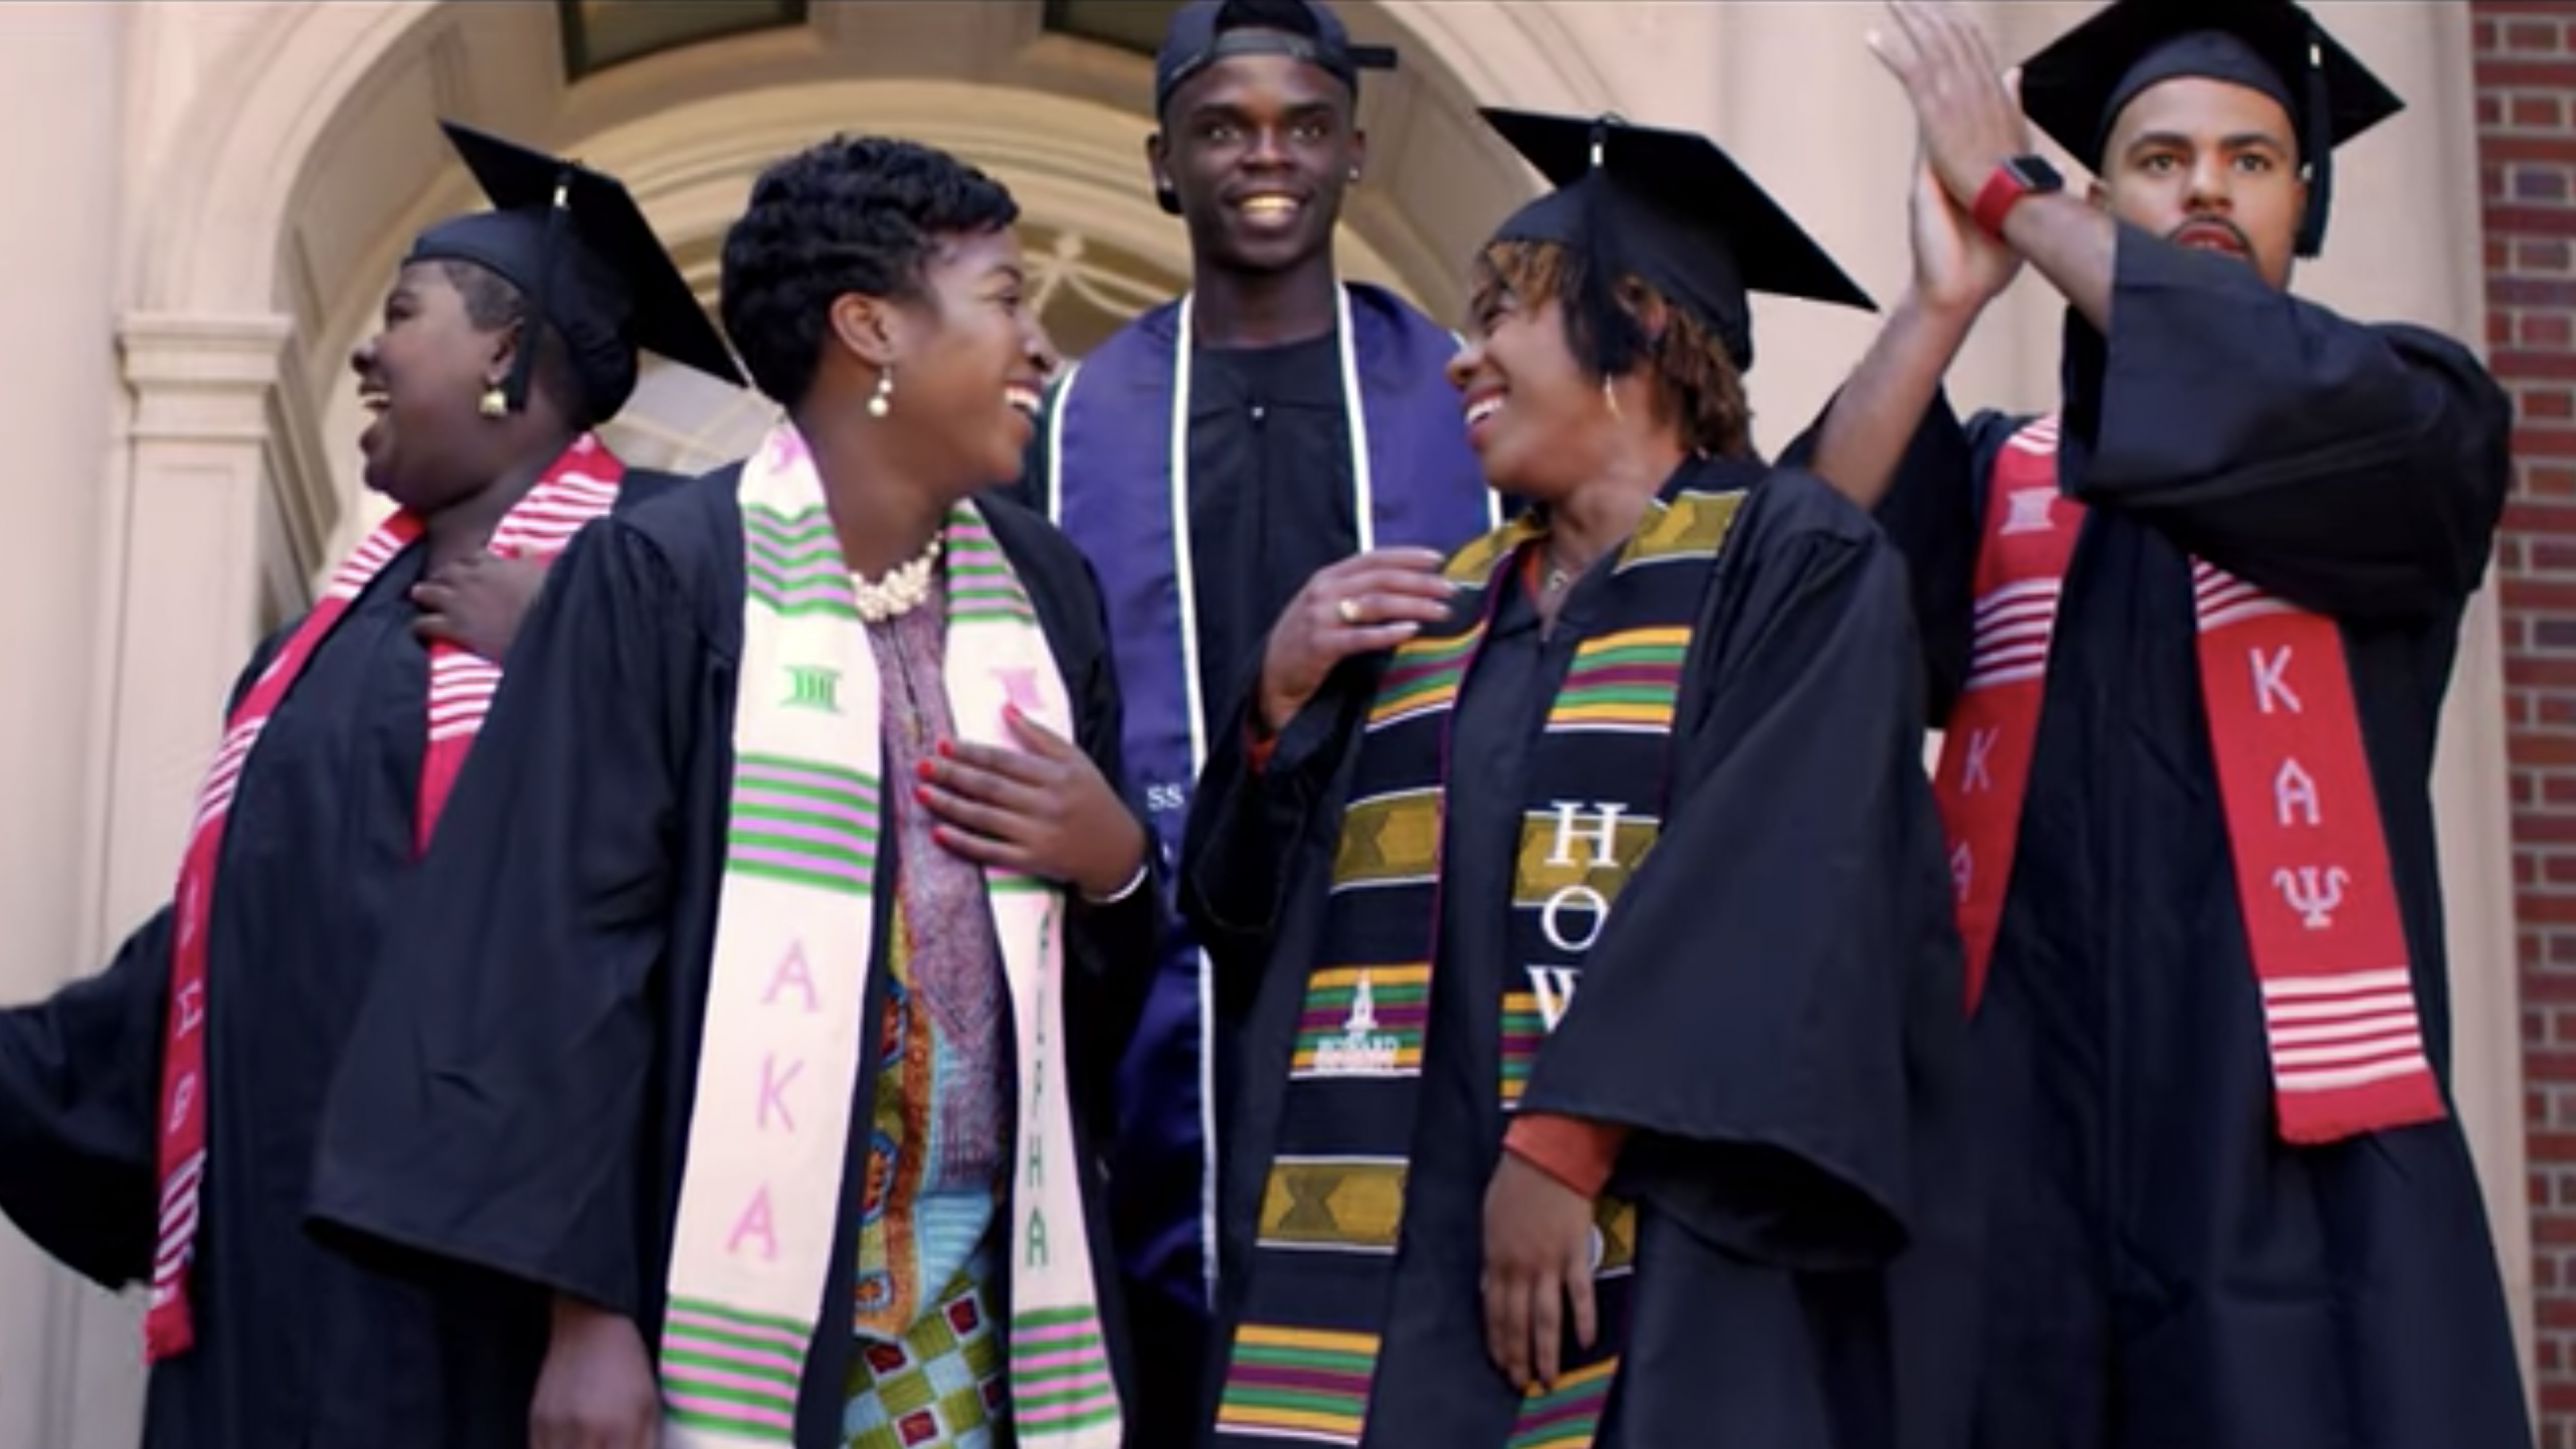 A group of graduates, dressed in caps and gowns, celebrate on the steps of a college